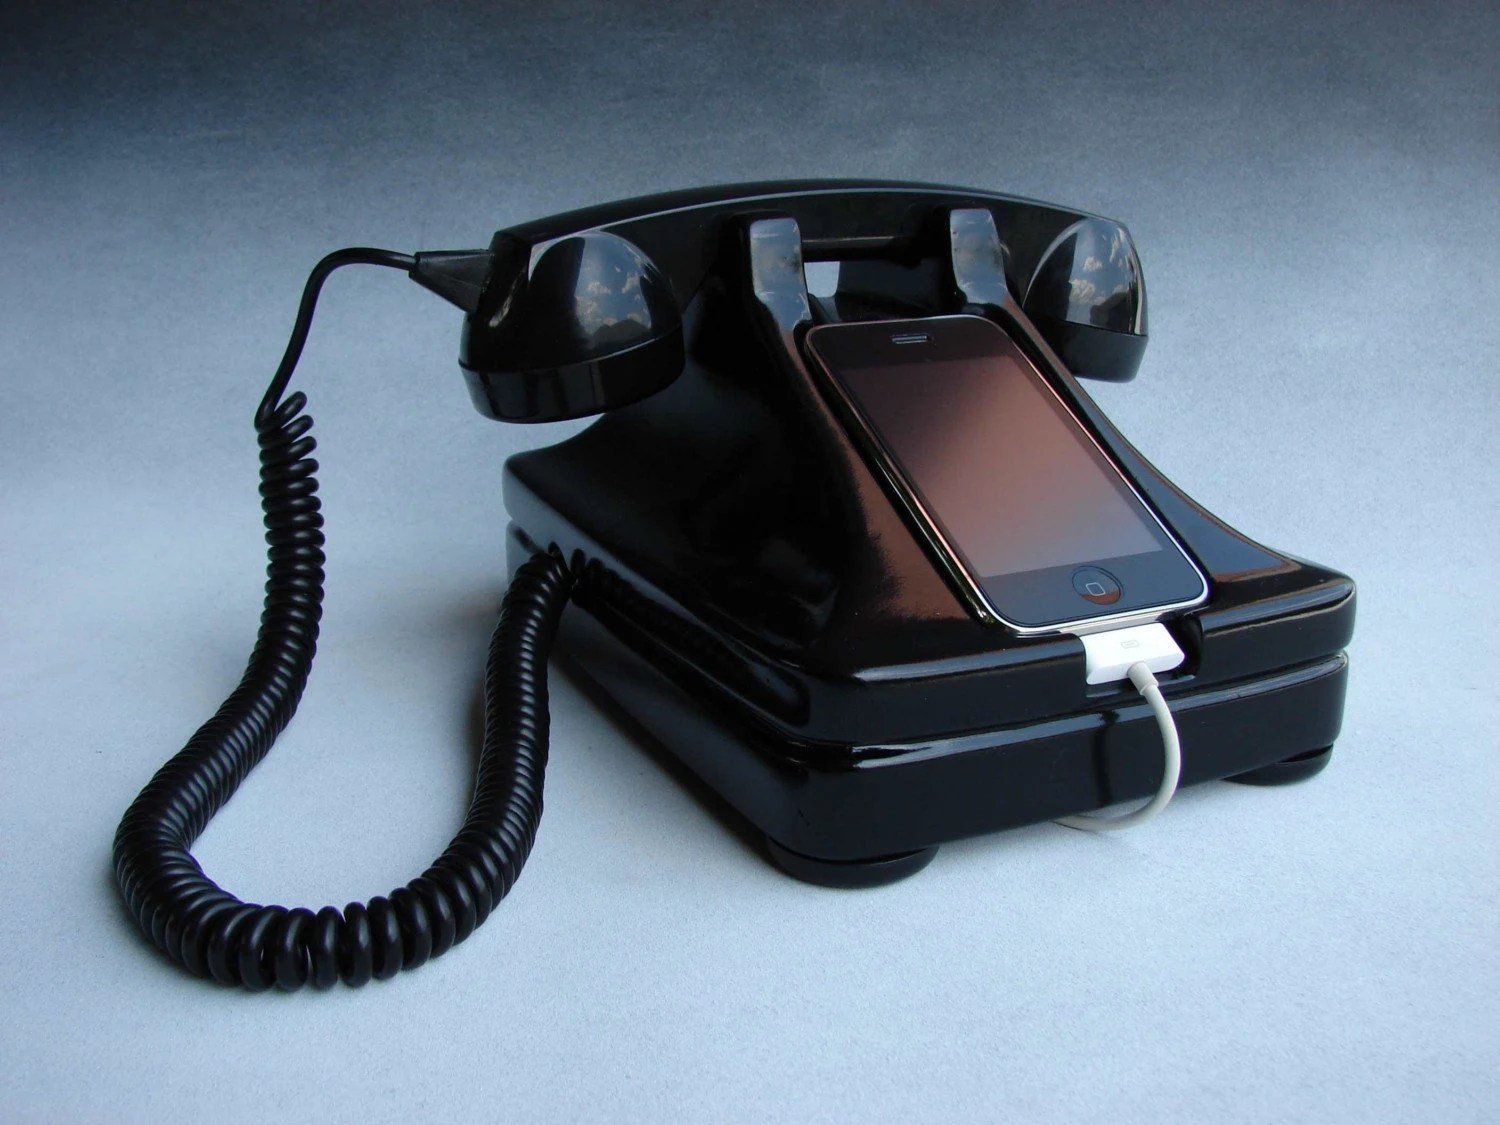 hight resolution of this may be the mother of all retro inspired iphone accessories because it is an actual retrofitted rotary phone aw how quaint turned into a base